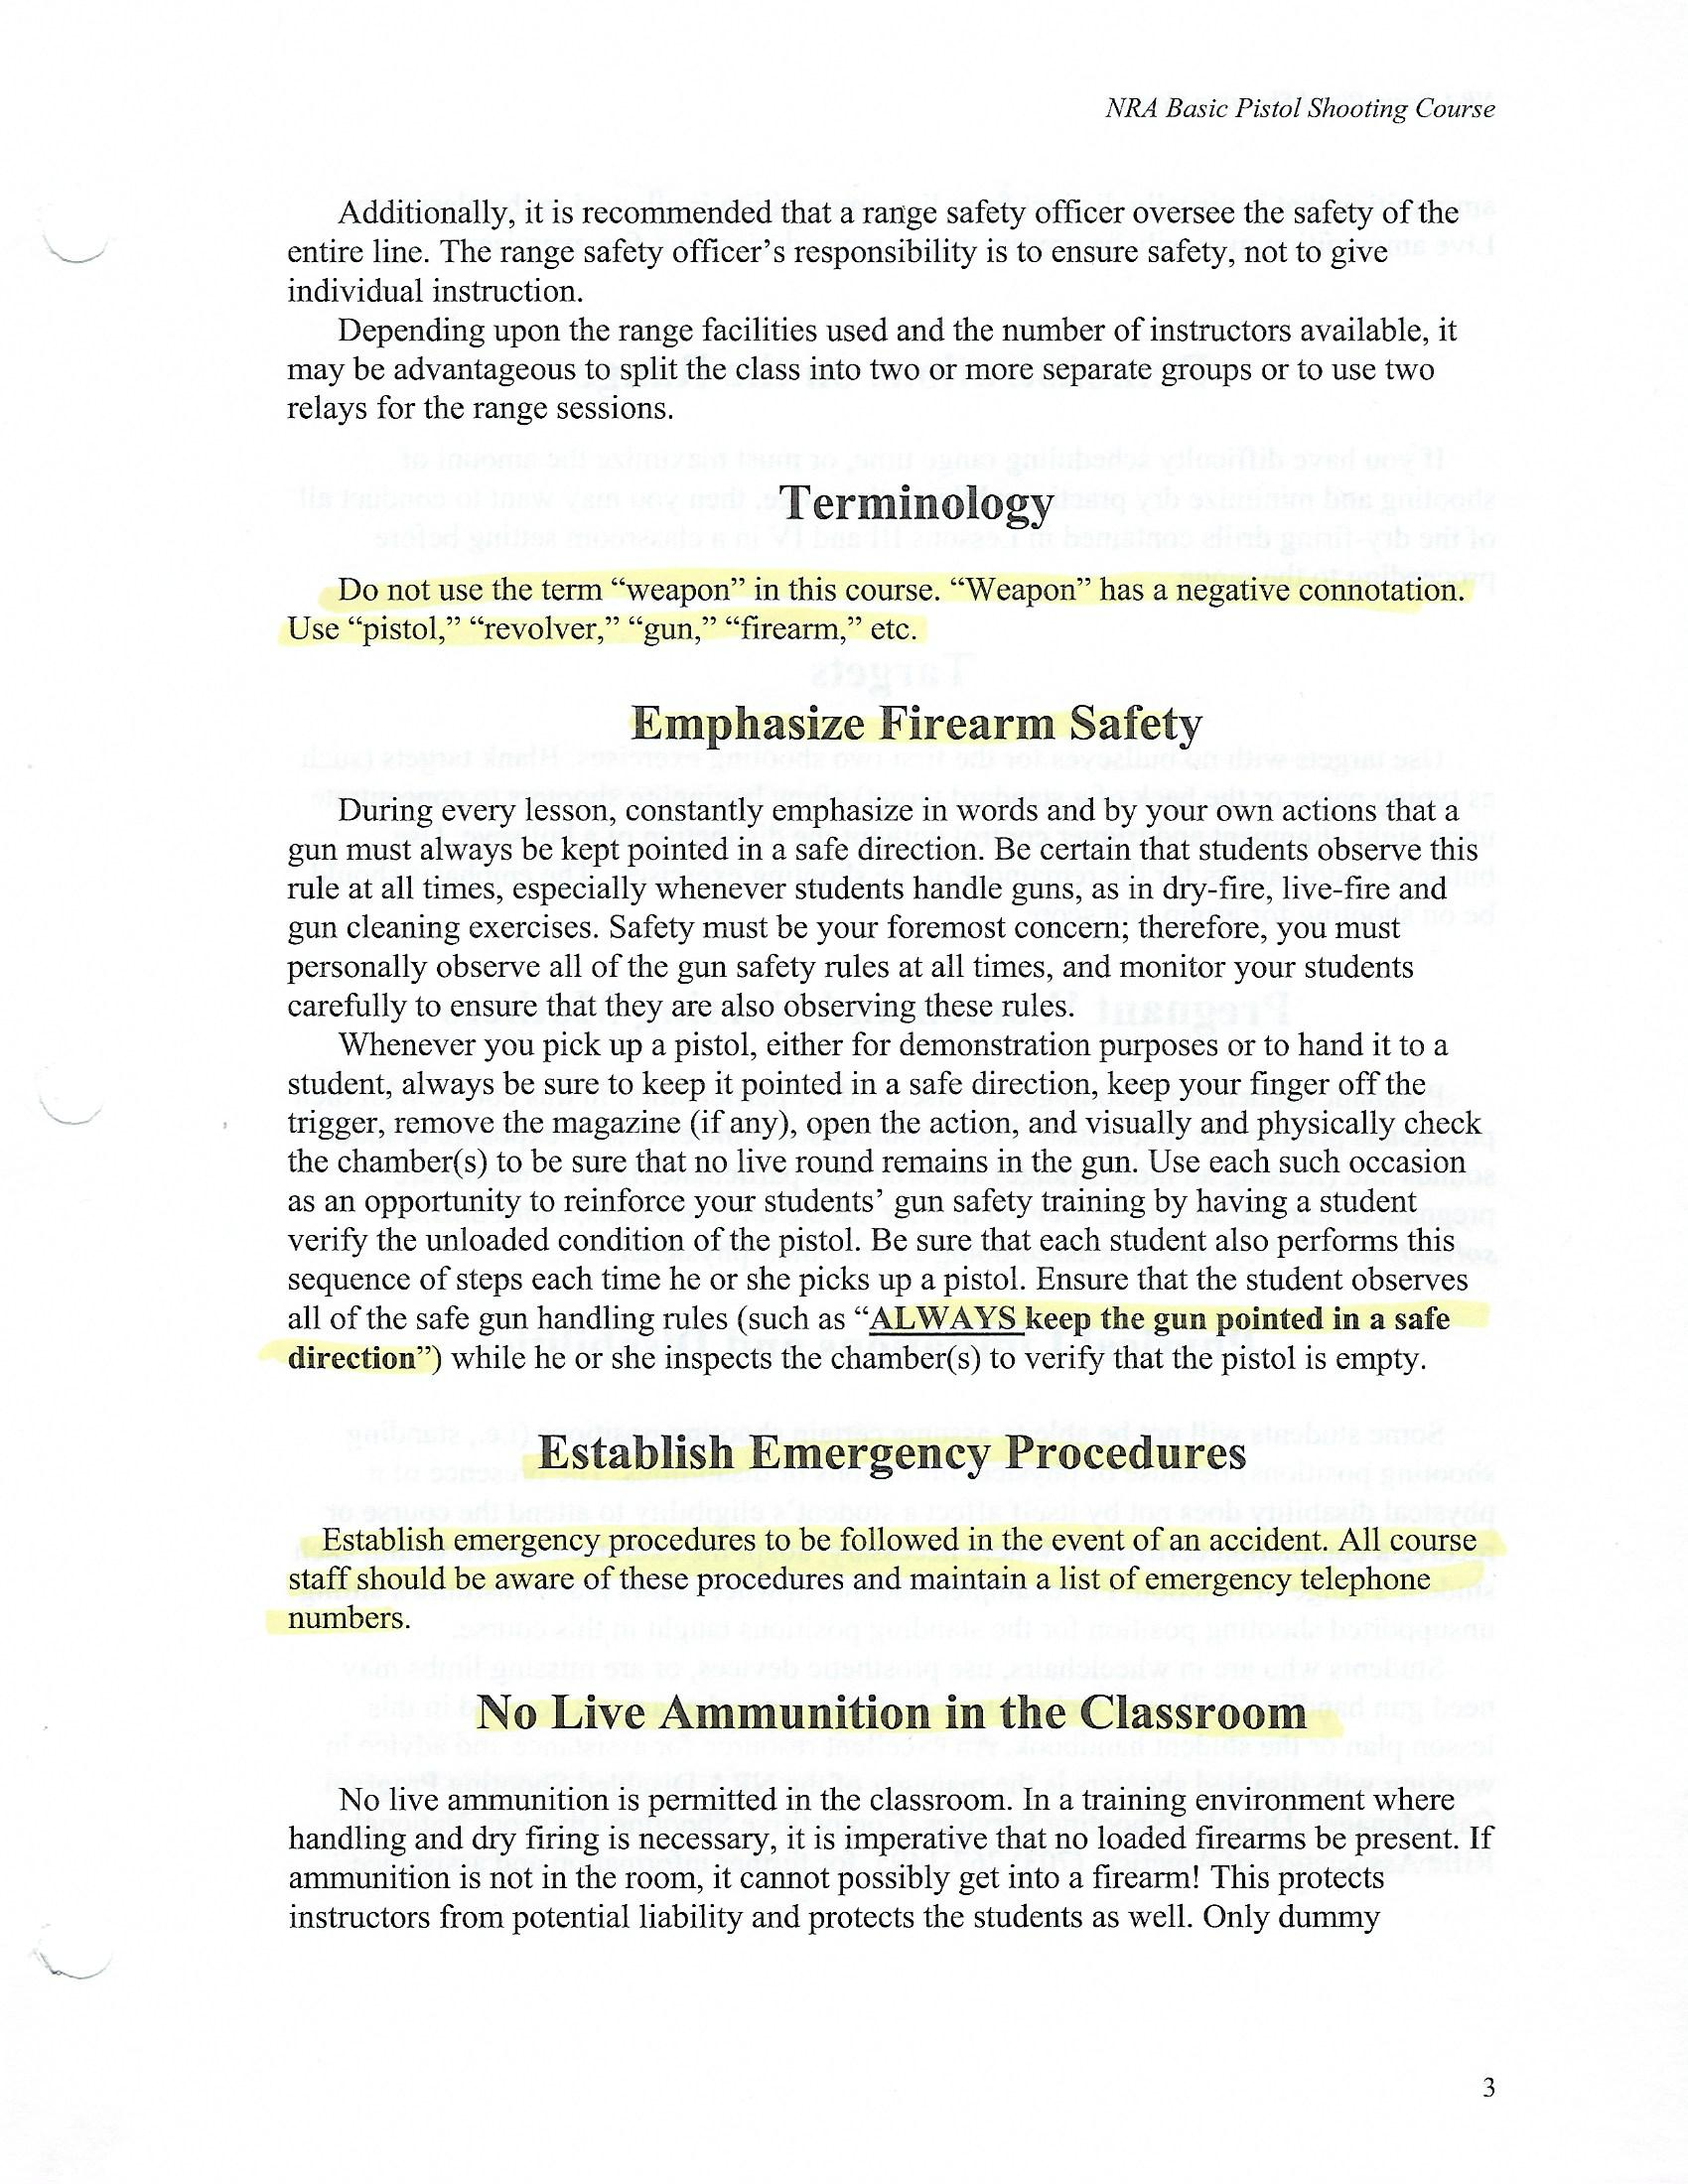 NRA Class Disarm Requirement-classroom-firearms-policy-p-1.jpg